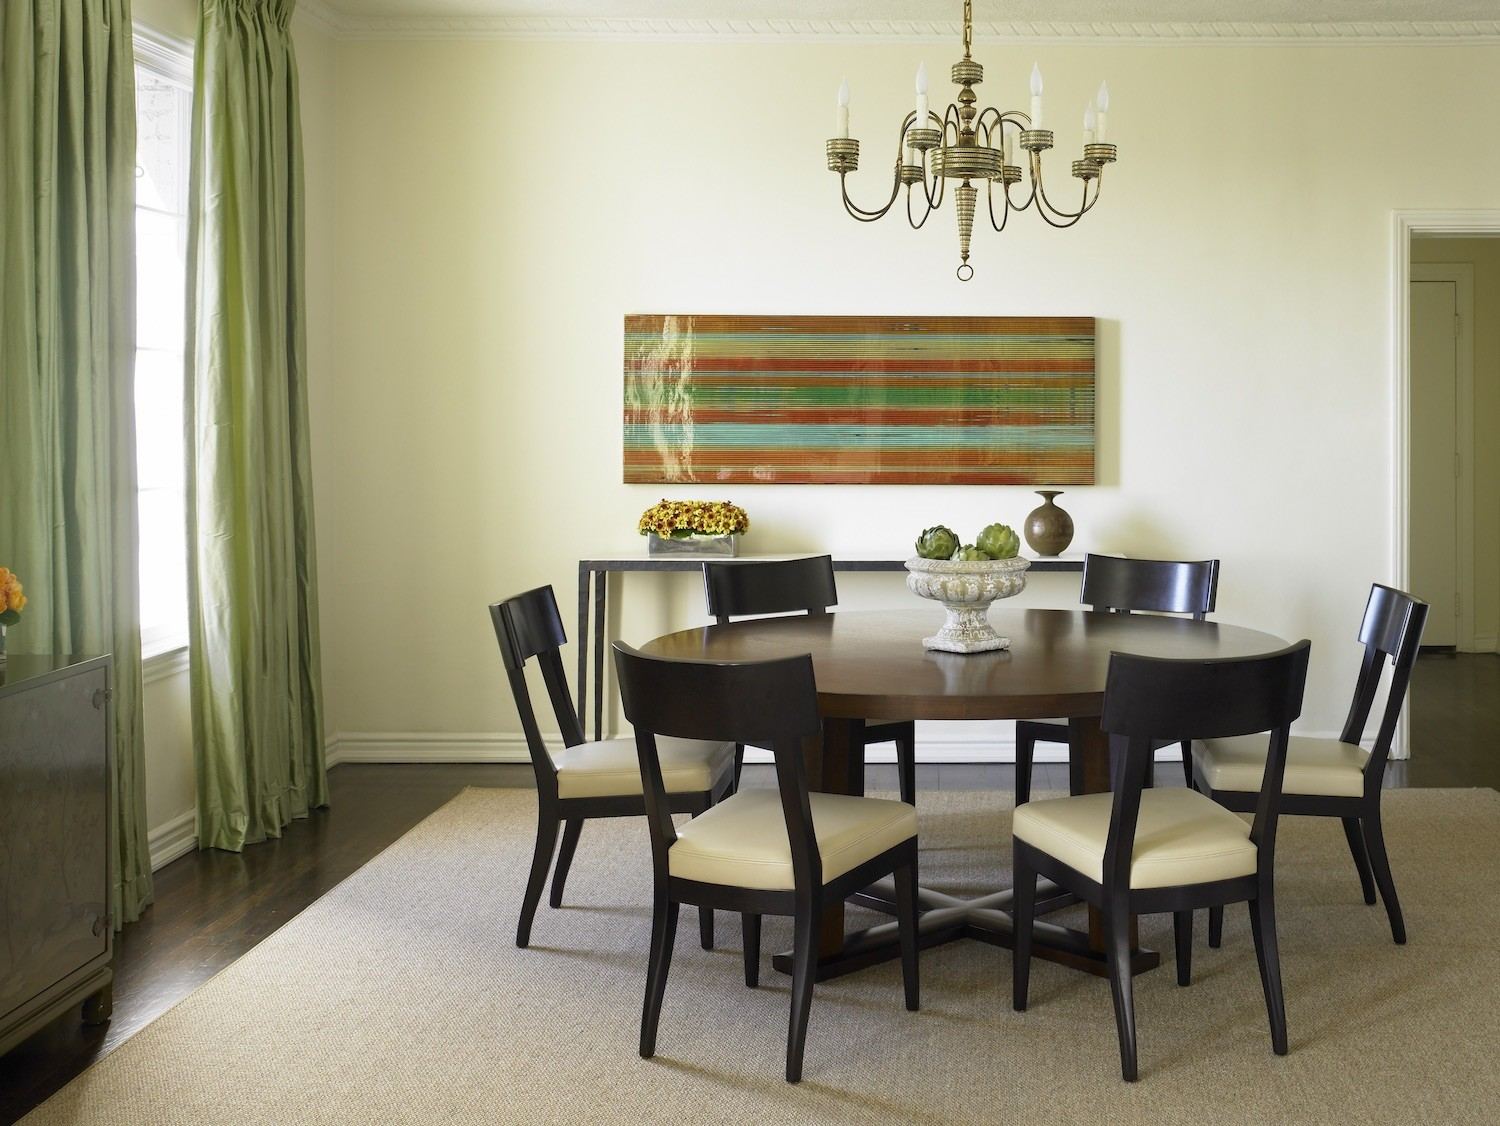 The artwork provides a refreshing infusion of color, the play of traditional against modern gives this space an updated yet evolved vibe. Designers/ Vincere LTD #diningrooms #hollywoodhomes #classicdesign